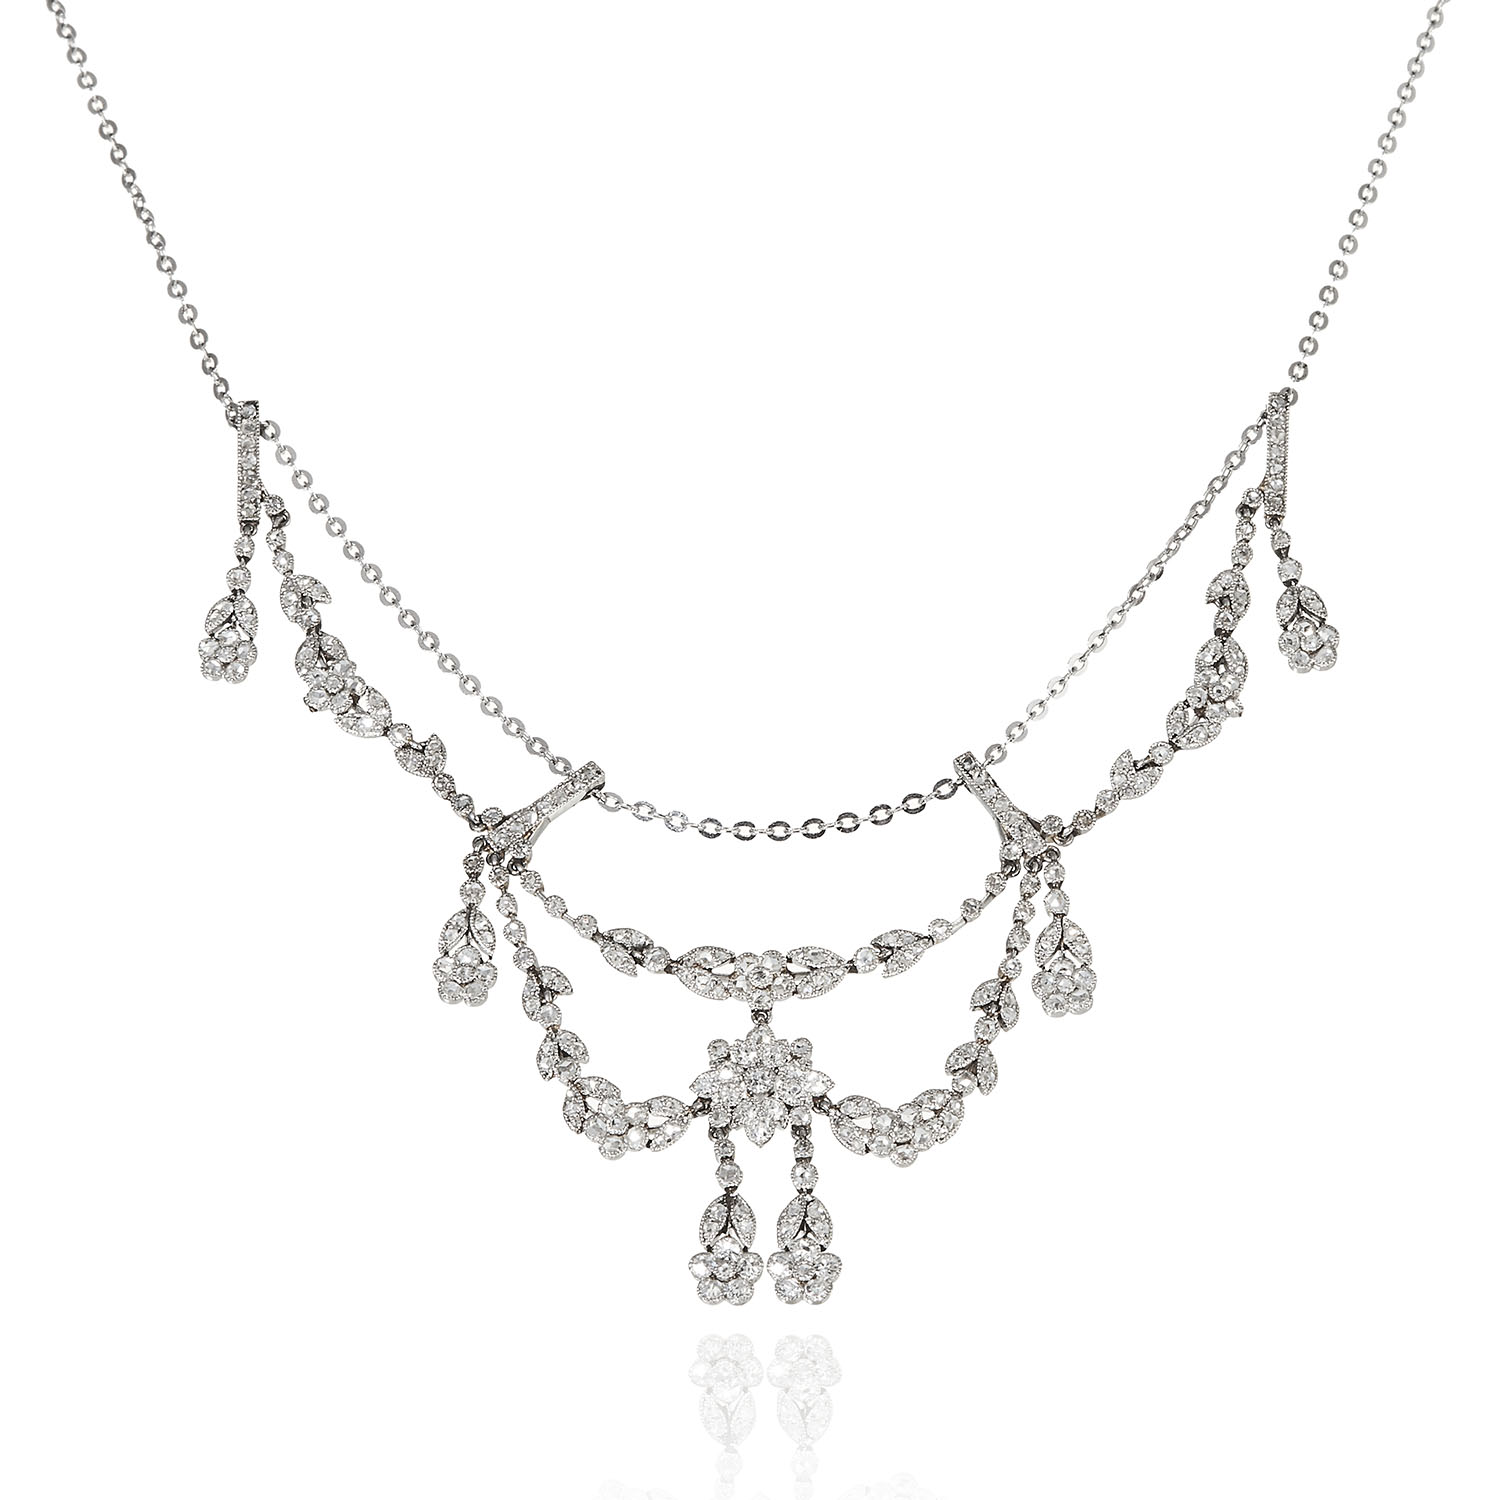 AN ANTIQUE DIAMOND NECKLACE in white gold or platinum, designed in floral and foliate motif,